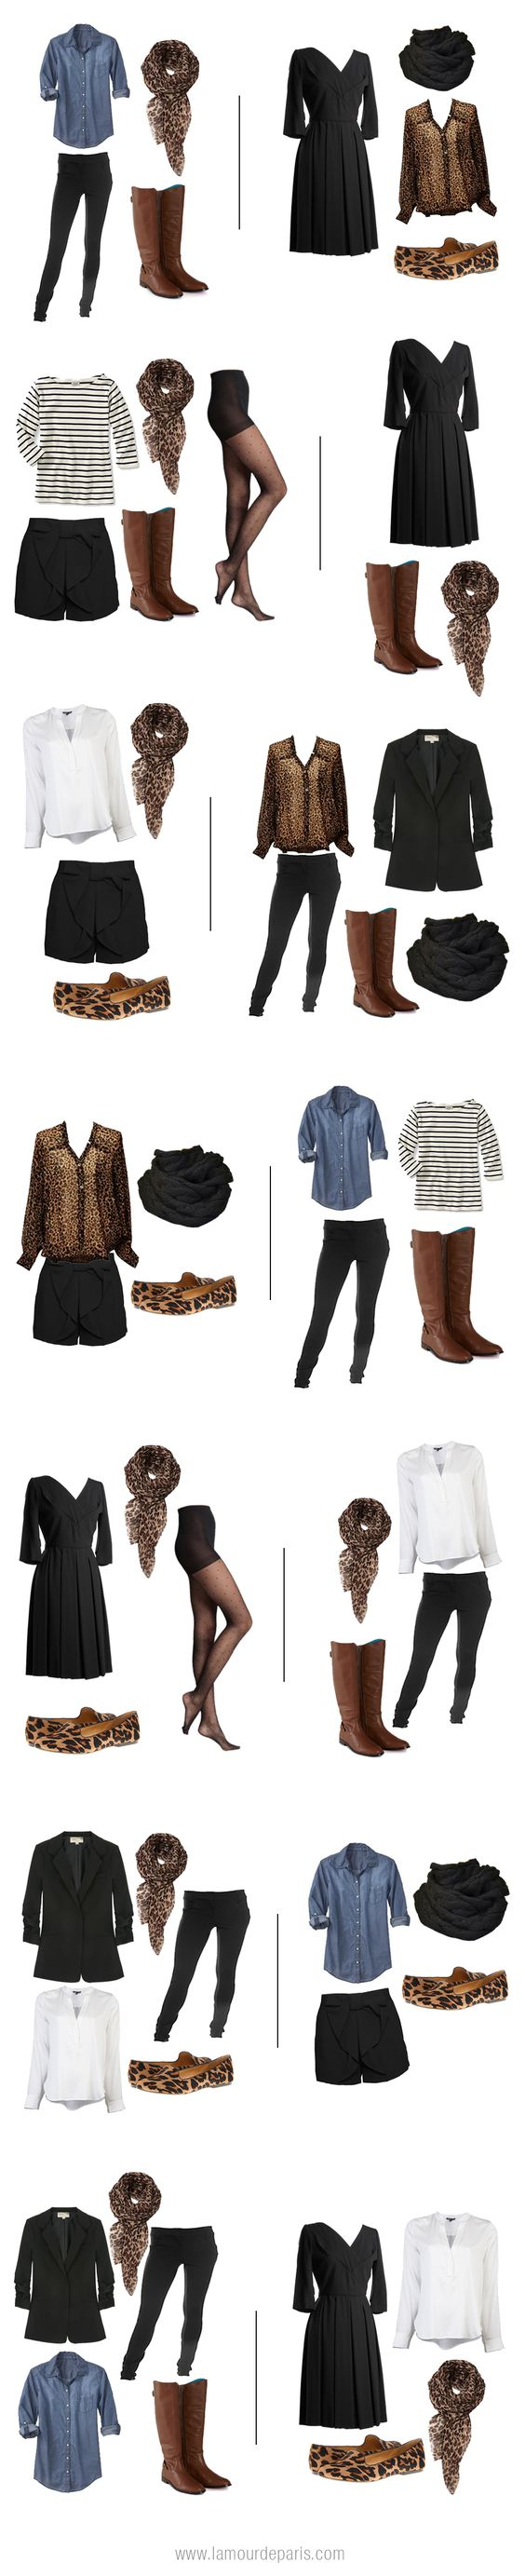 How to pack for Europe in a carry on suitcase only, also great capsule wardrobe.  Can use a fave color instead of leopard, change base color to suit complexion, etc